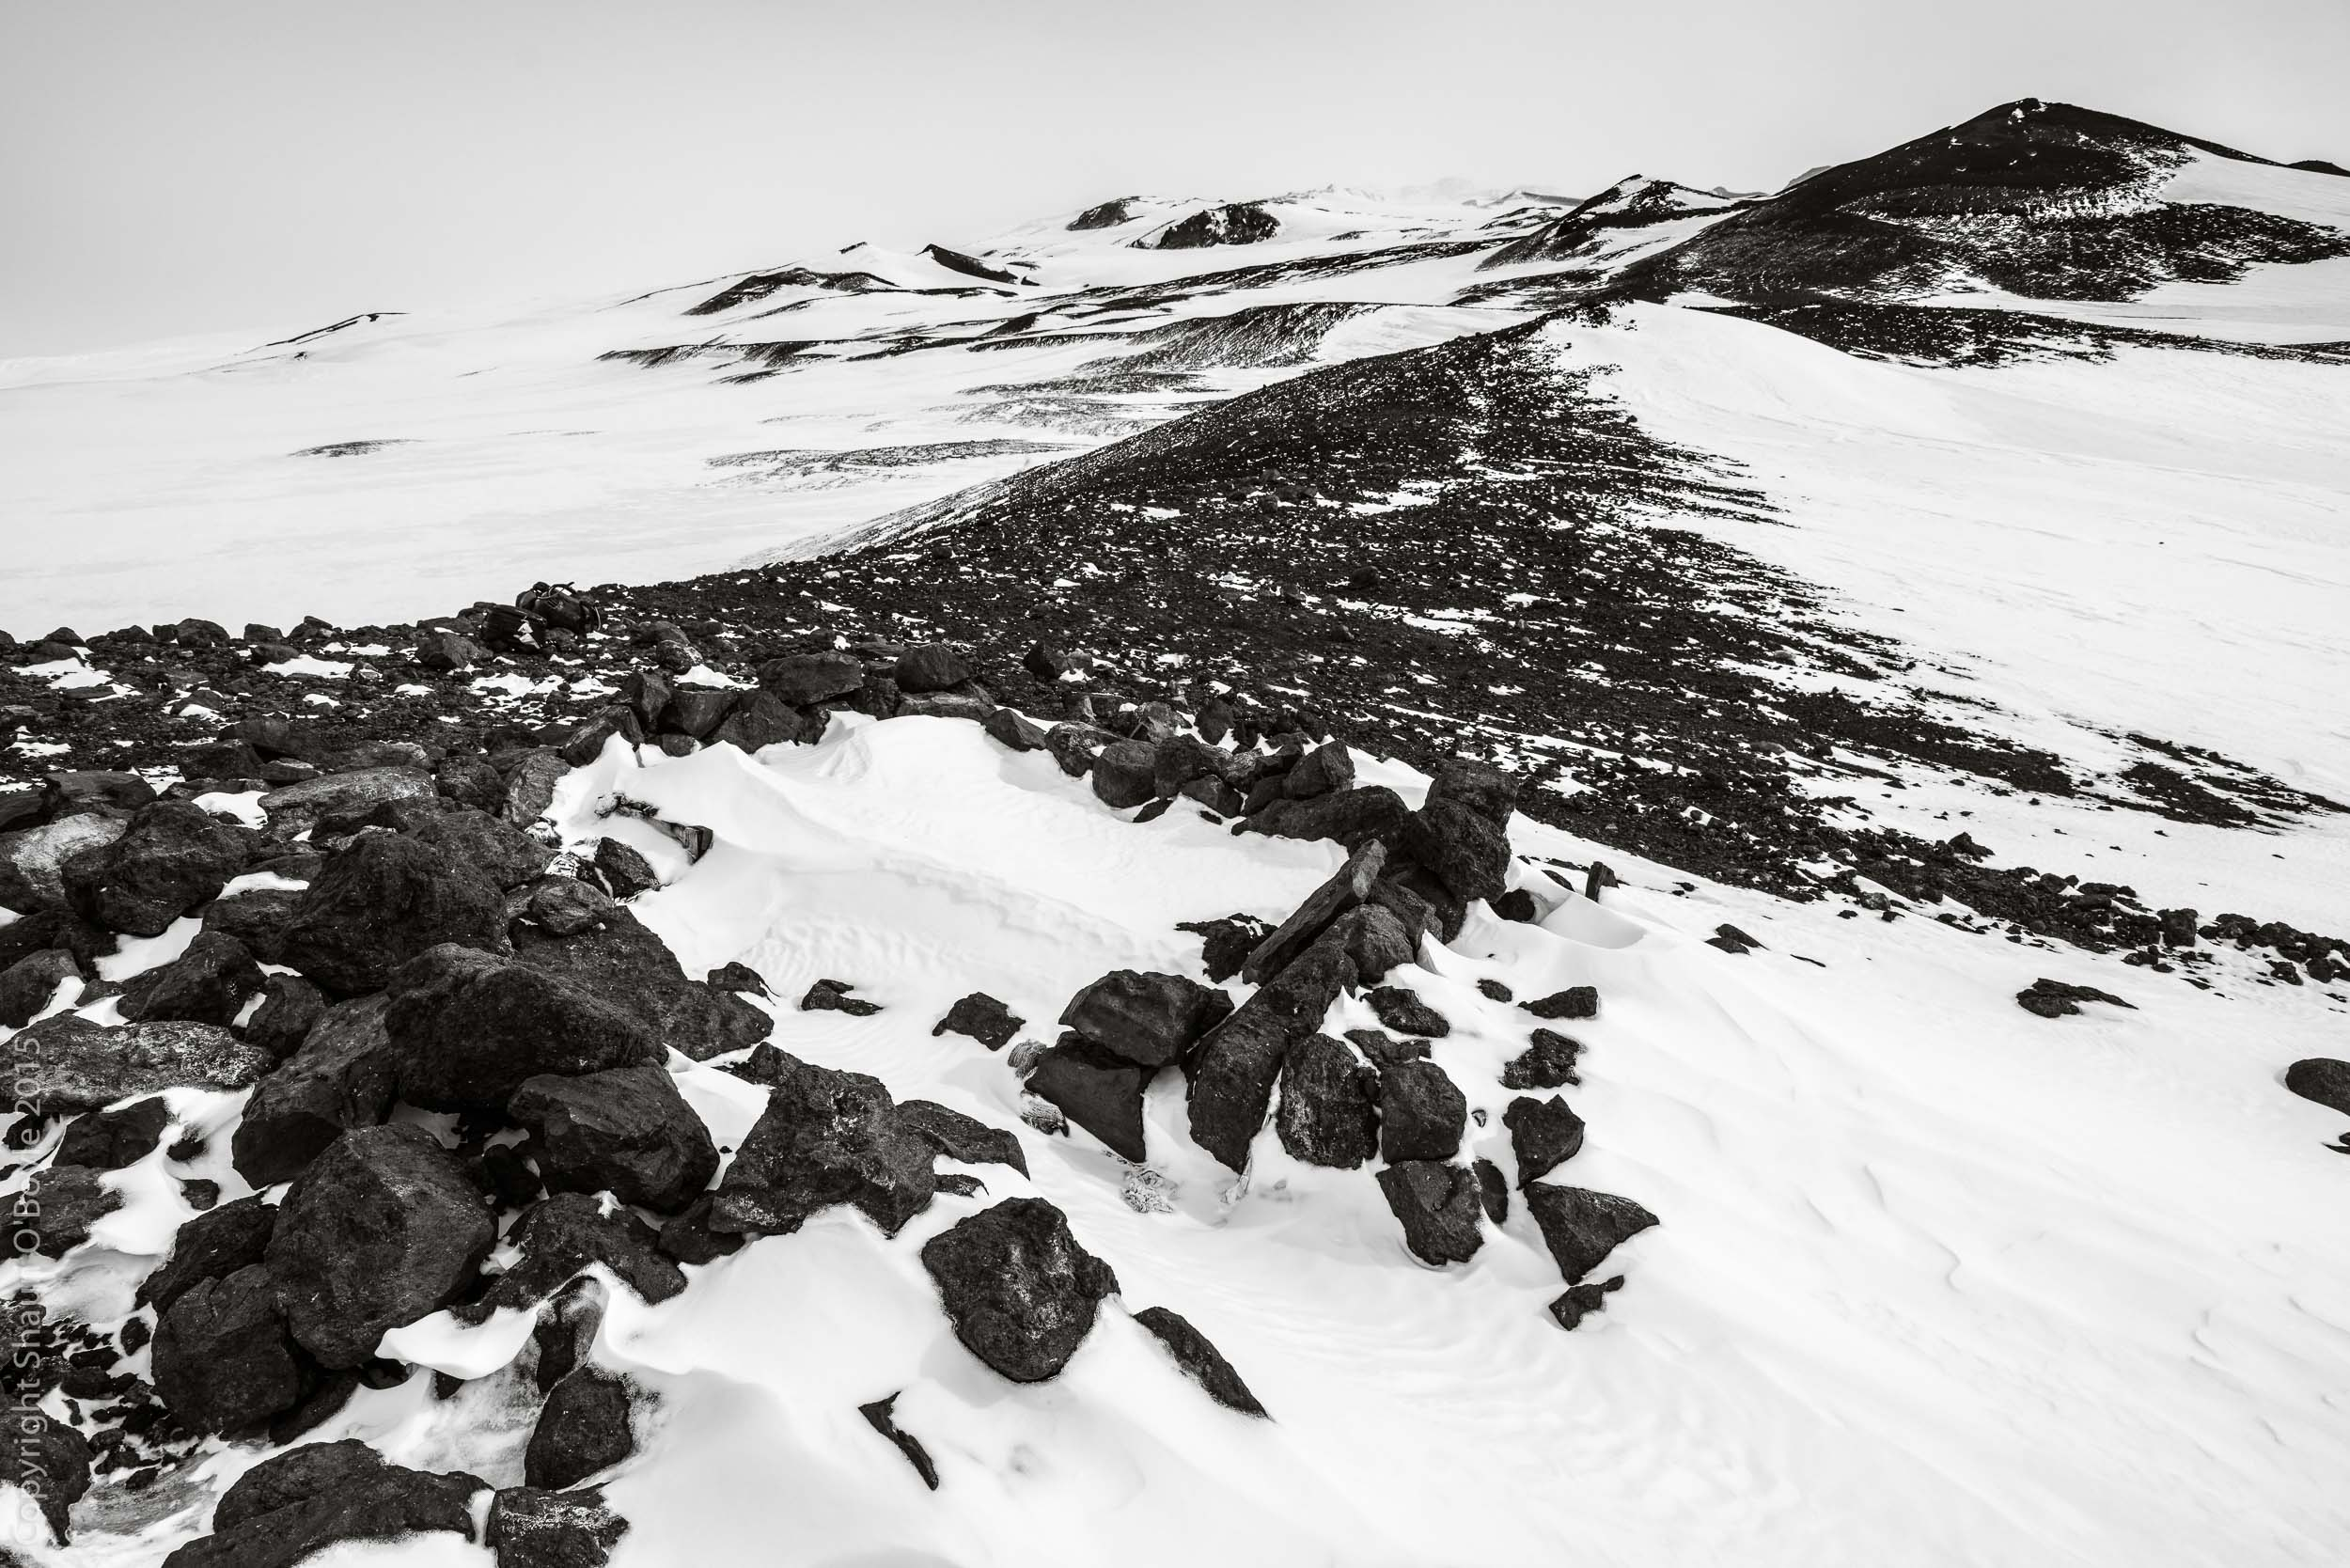 Wilson's Stone Igloo and the slopes of Mout Terror, Cape Crozier, Ross Island, Antarctica